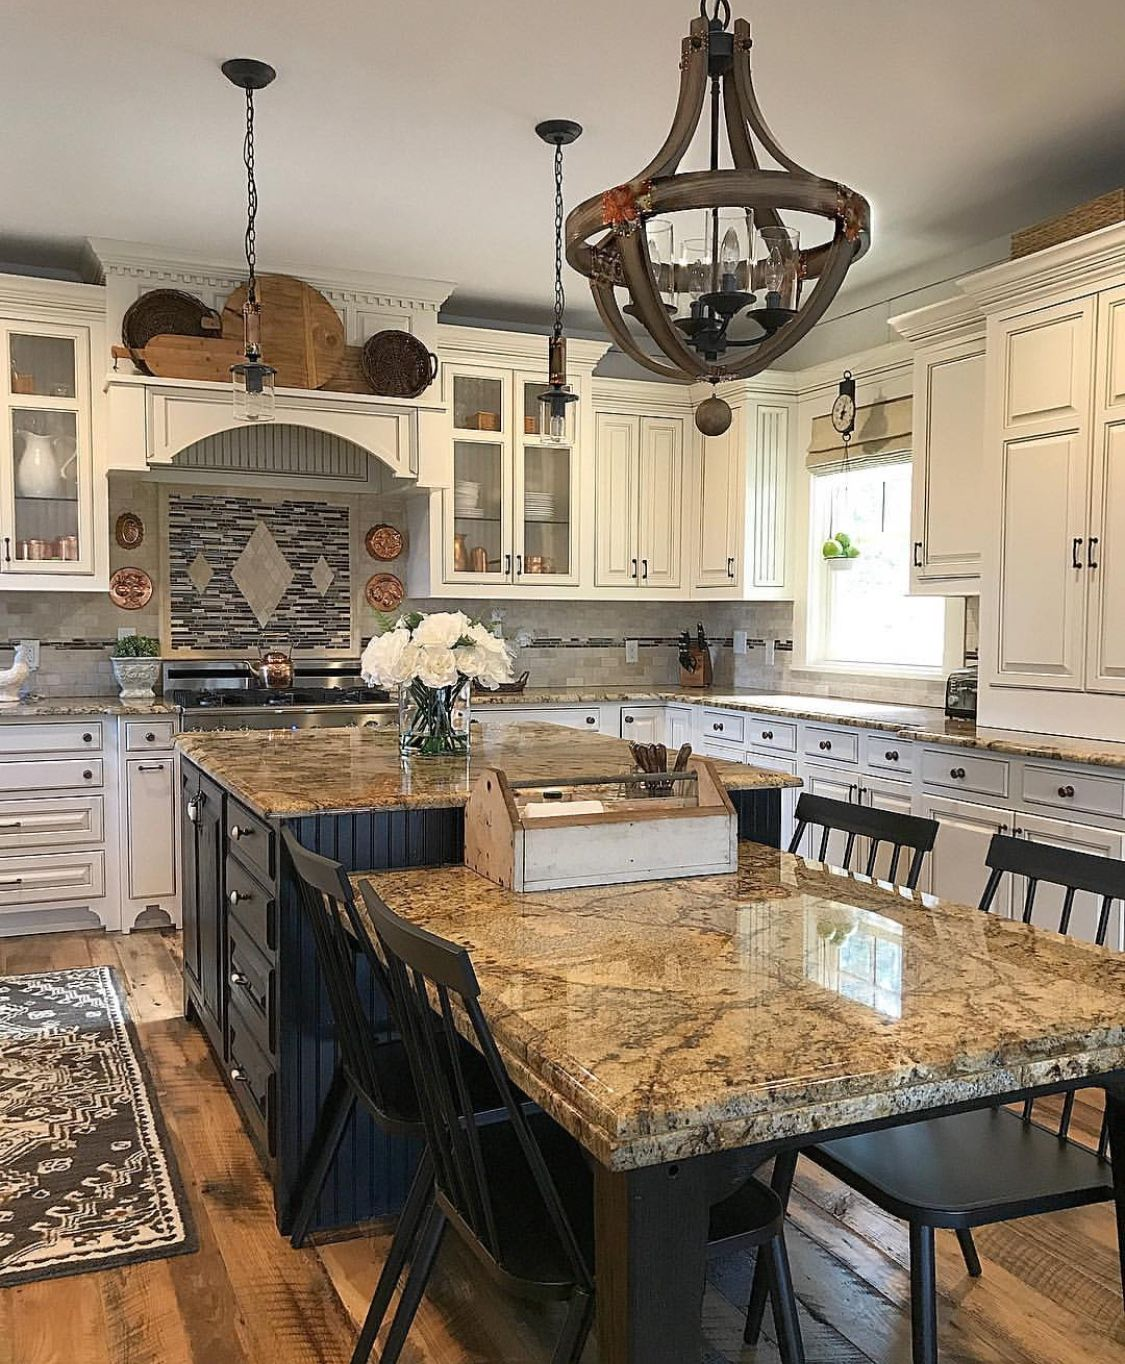 Home decor kitchen image by Becky Garling on Kitchens